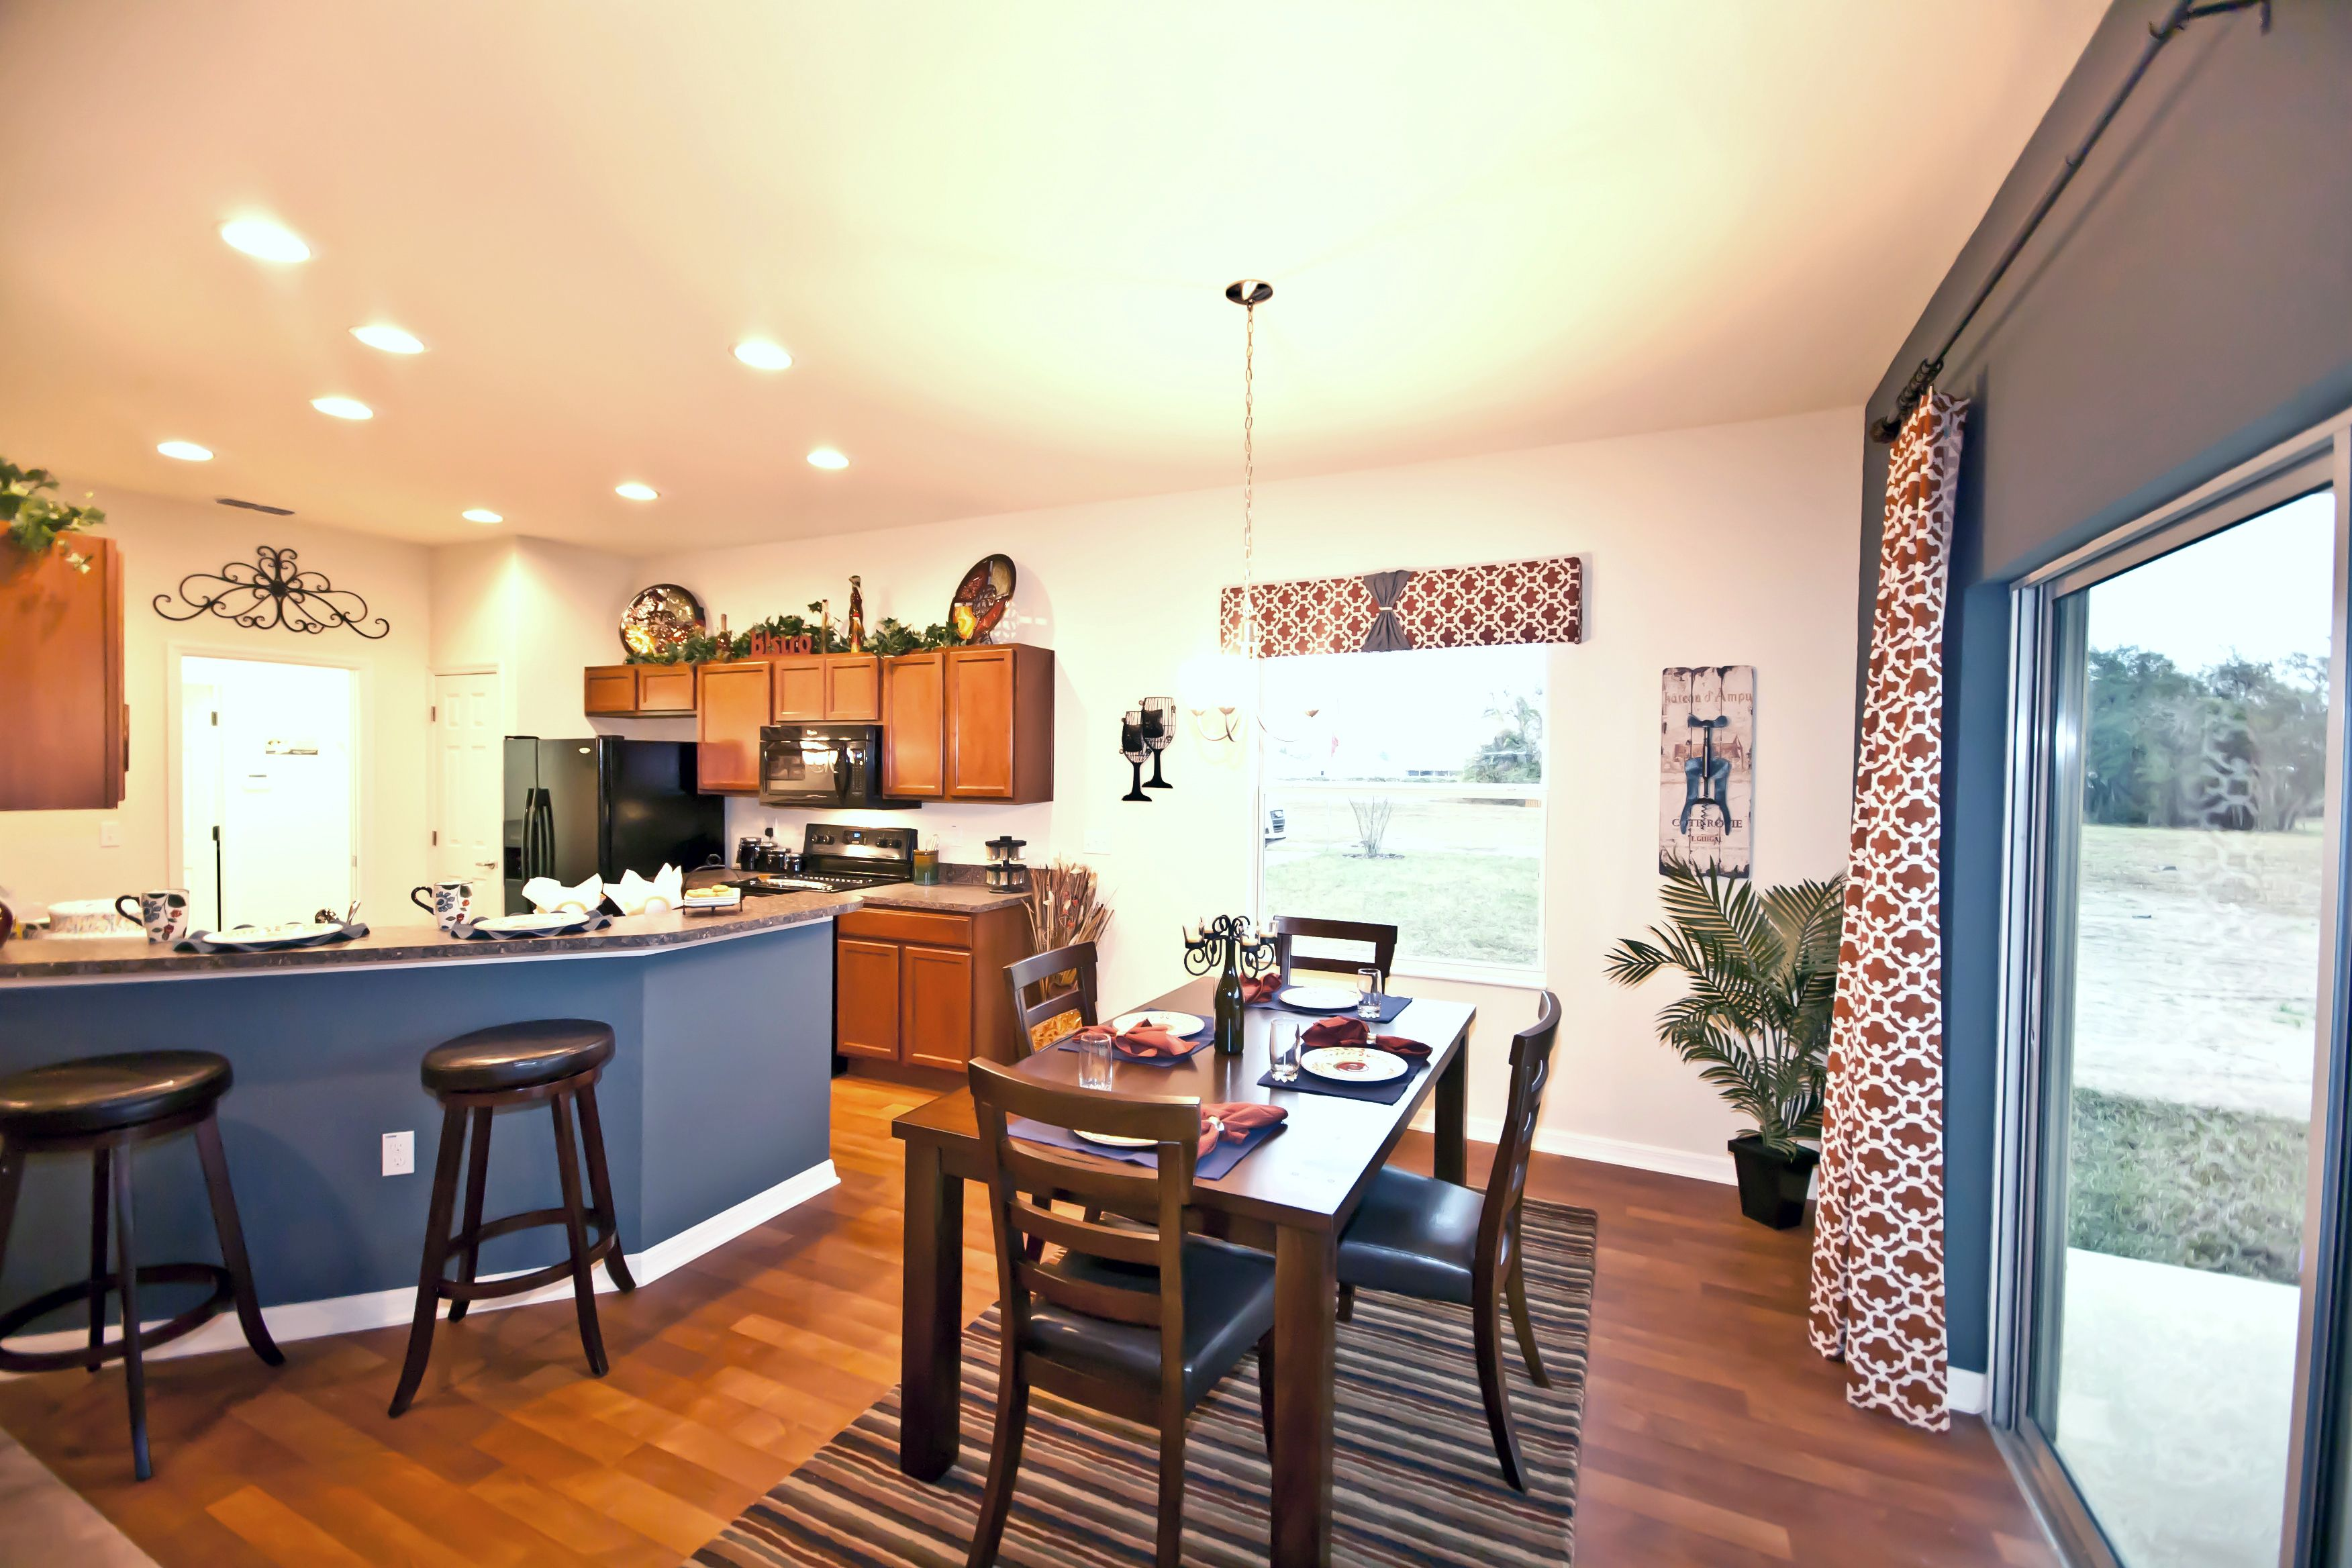 Love The Matching Accent Wall And Painted Wall Under The